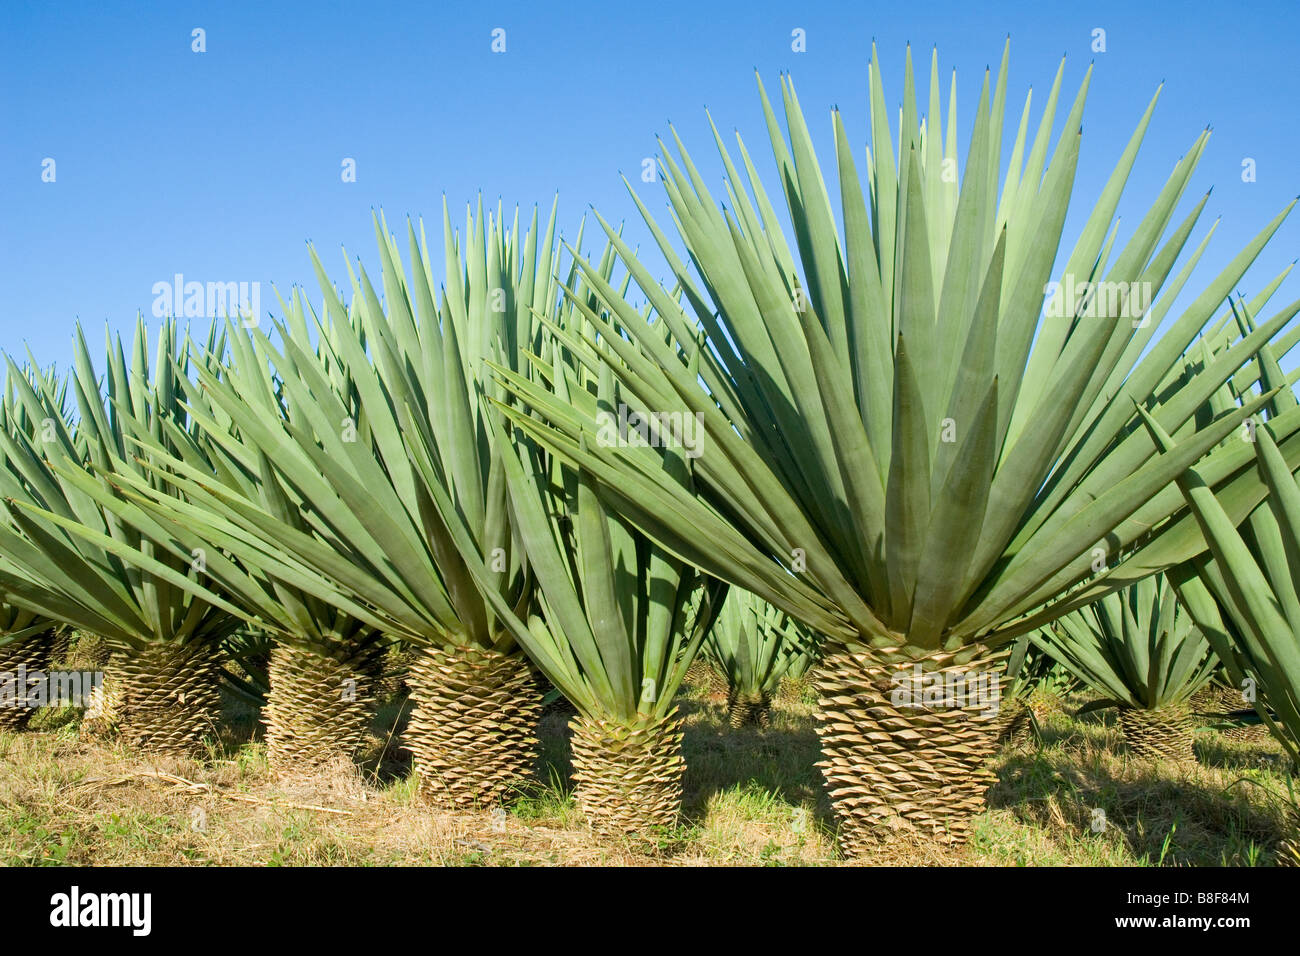 sisal plants agave sisalana yield a stiff fibre traditionally used